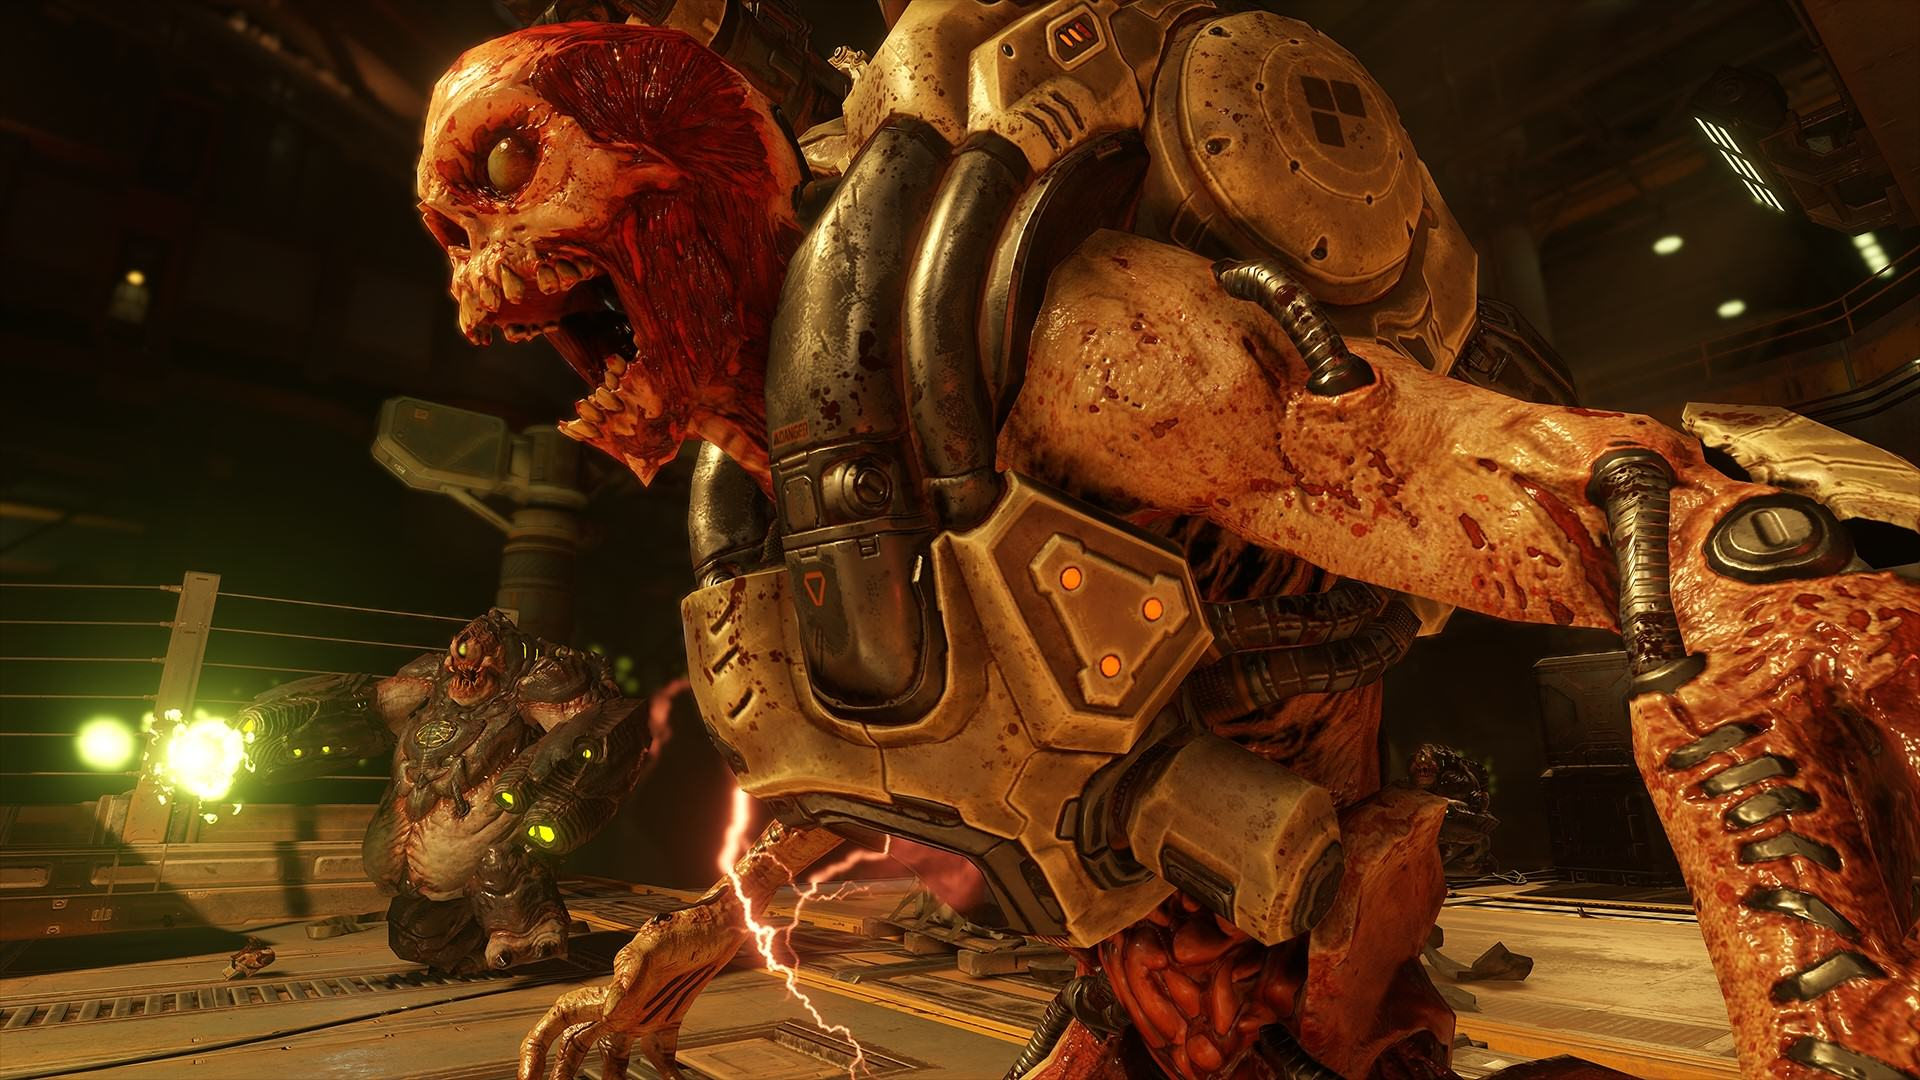 DOOM Higher Difficulty And Non Linear Exploration Confirmed DOOM 2016 Rev Mancubus 1437988261